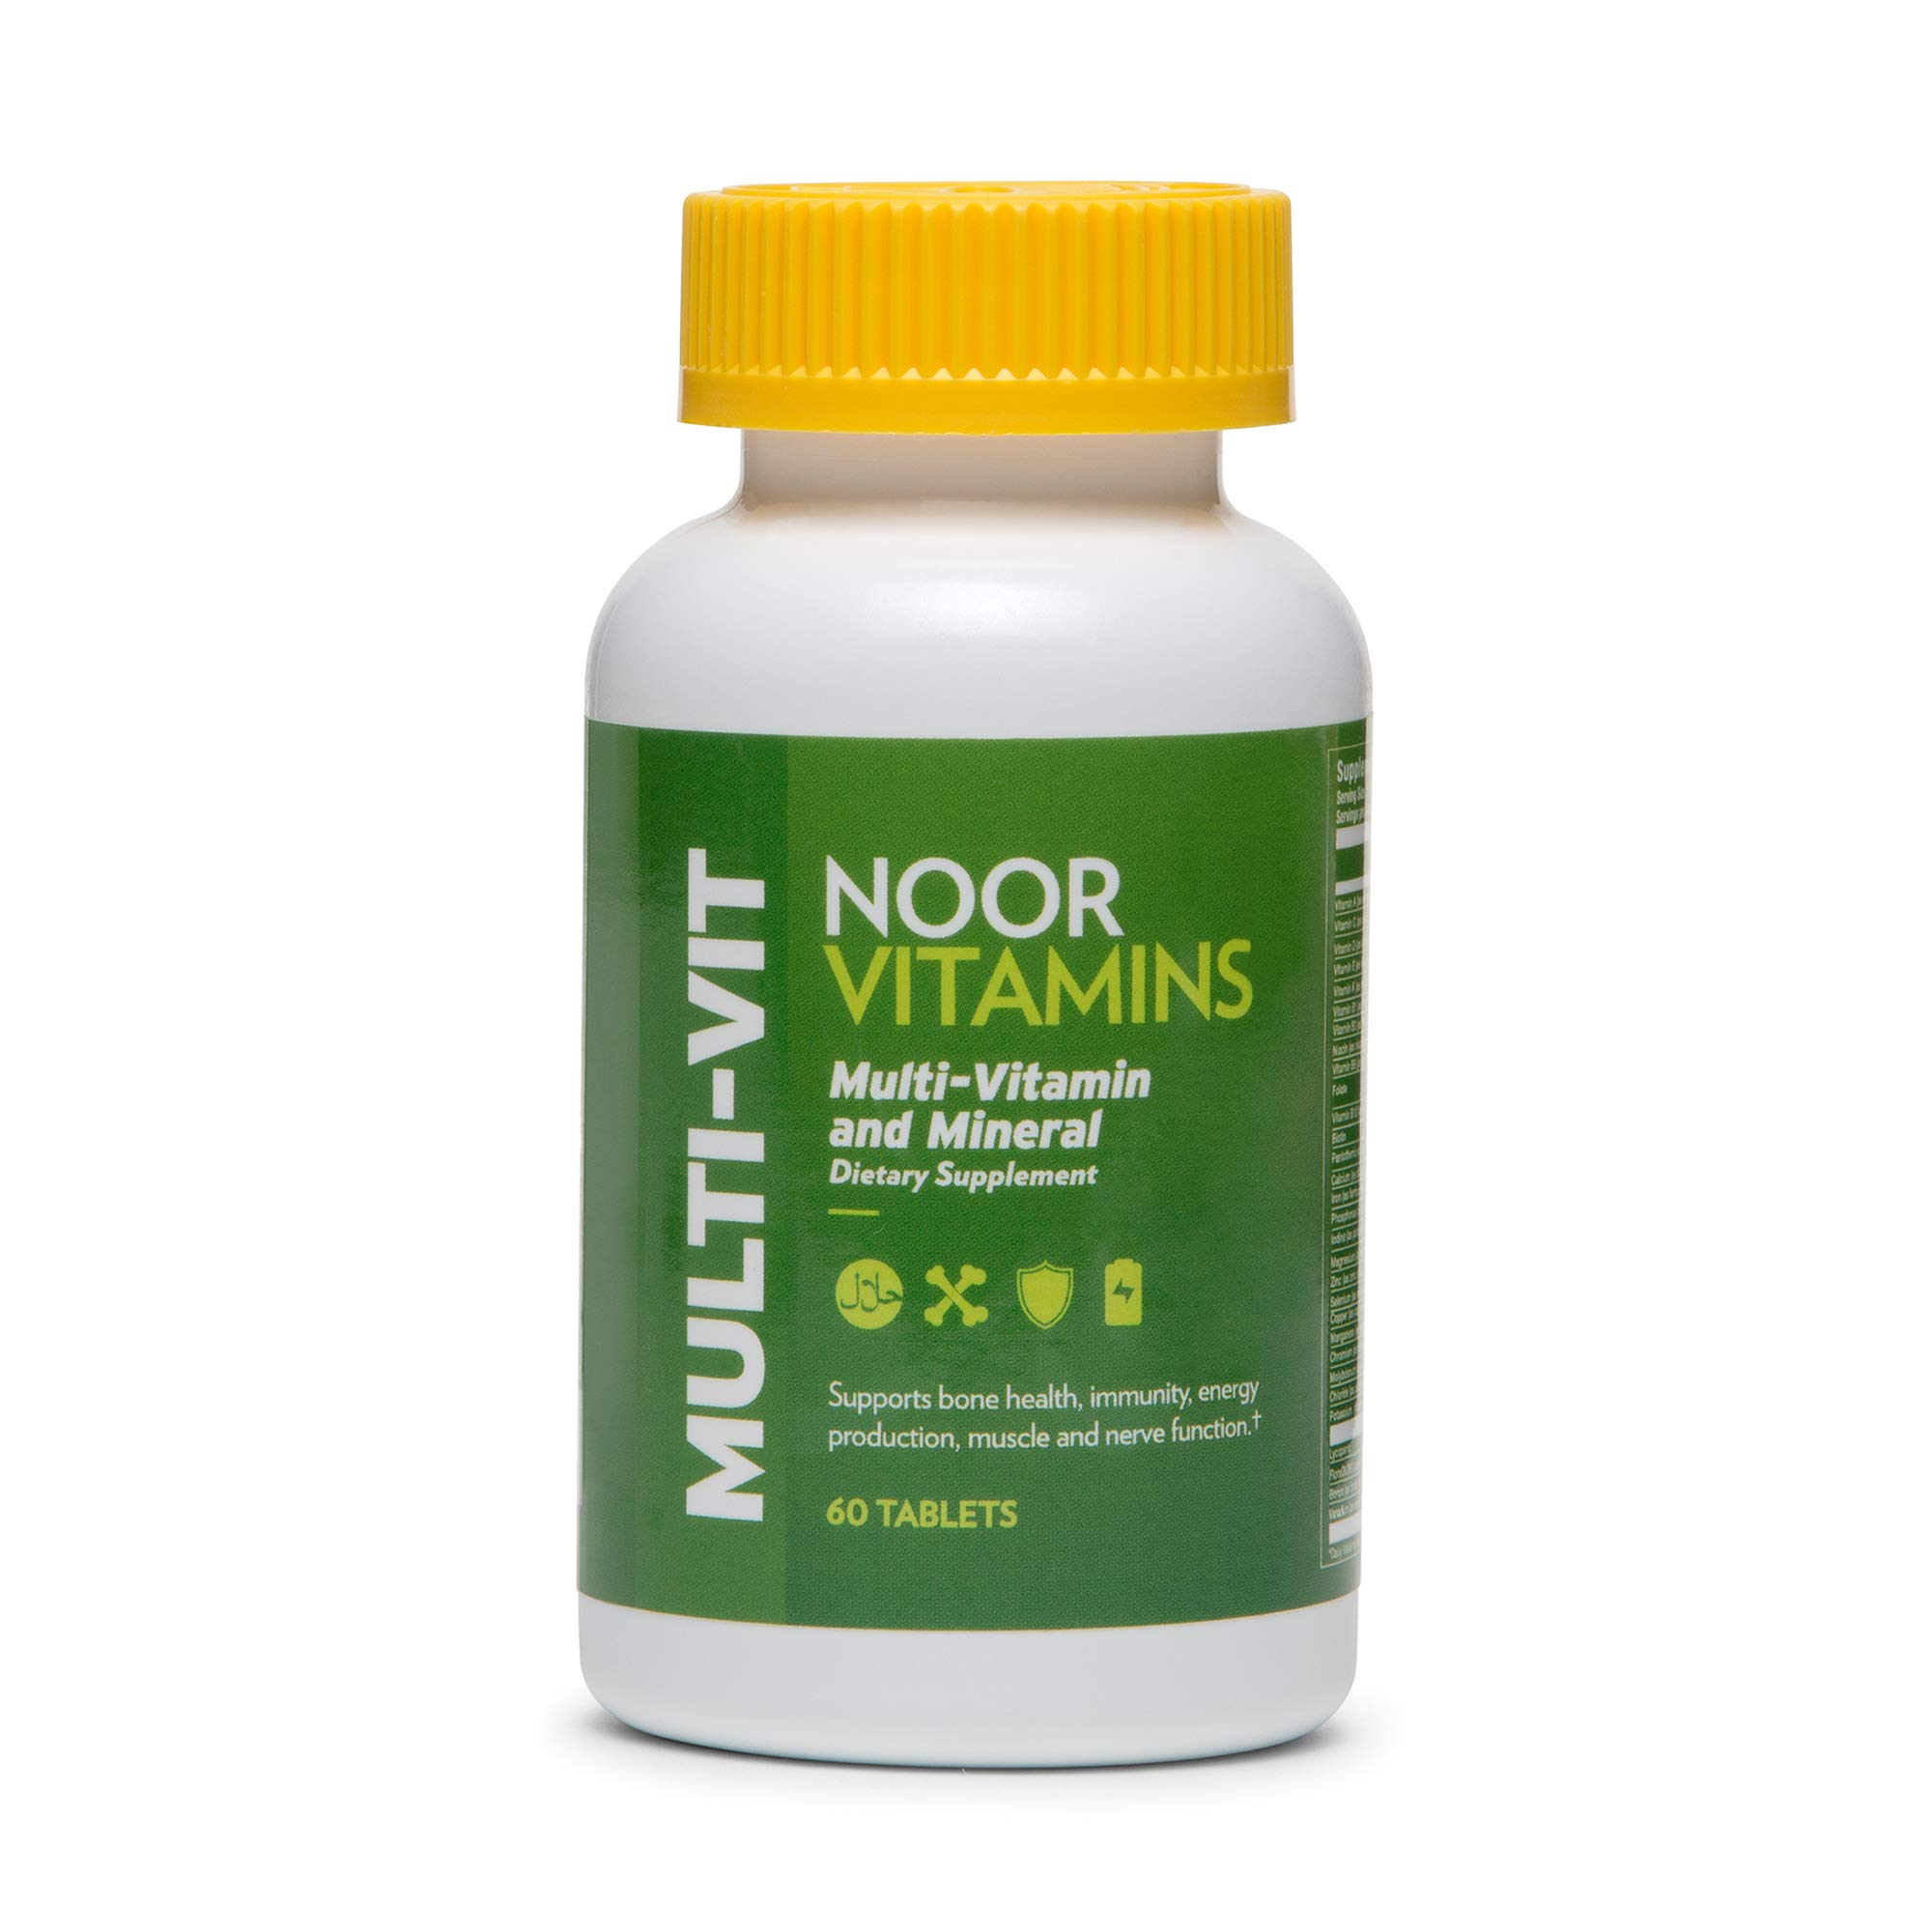 NoorVitamins Daily Adult Multivitamin Supplement w/ 30 Vitamins & Minerals including A, C, D, E, Biotin & Zinc to support general health for Men & Women I Non-GMO I Halal Multivitamin (2 Month Supply)                NoorVitamins Kids Formula Daily Gummy Multivitamin: Vitamin C, D3, and Zinc for Immunity, B6 & B12 for Energy. Non-GMO, Allergen & Gluten Free Halal Gummy - 90 Count (45-90 Day Supply: Age Dependent)                NoorVitamins Vitamin D3 5000 IU Softgels I Supports Bone, Immune, Heart & Mood Health I Pure Vitamin D From Safflower Oil To Maximize Absorption I All Natural, Non-GMO, Gluten Free & Halal (60 count)                NoorVitamins Ultra Omega-3 Wild Peruvian Fish Oil (2000mg/serving) w/ 800mg EPA & 400 mg DHA | Heart, Brain & Joint Support | Non-GMO & Gluten Free | Halal Vitamins (120 count – 2 month supply)